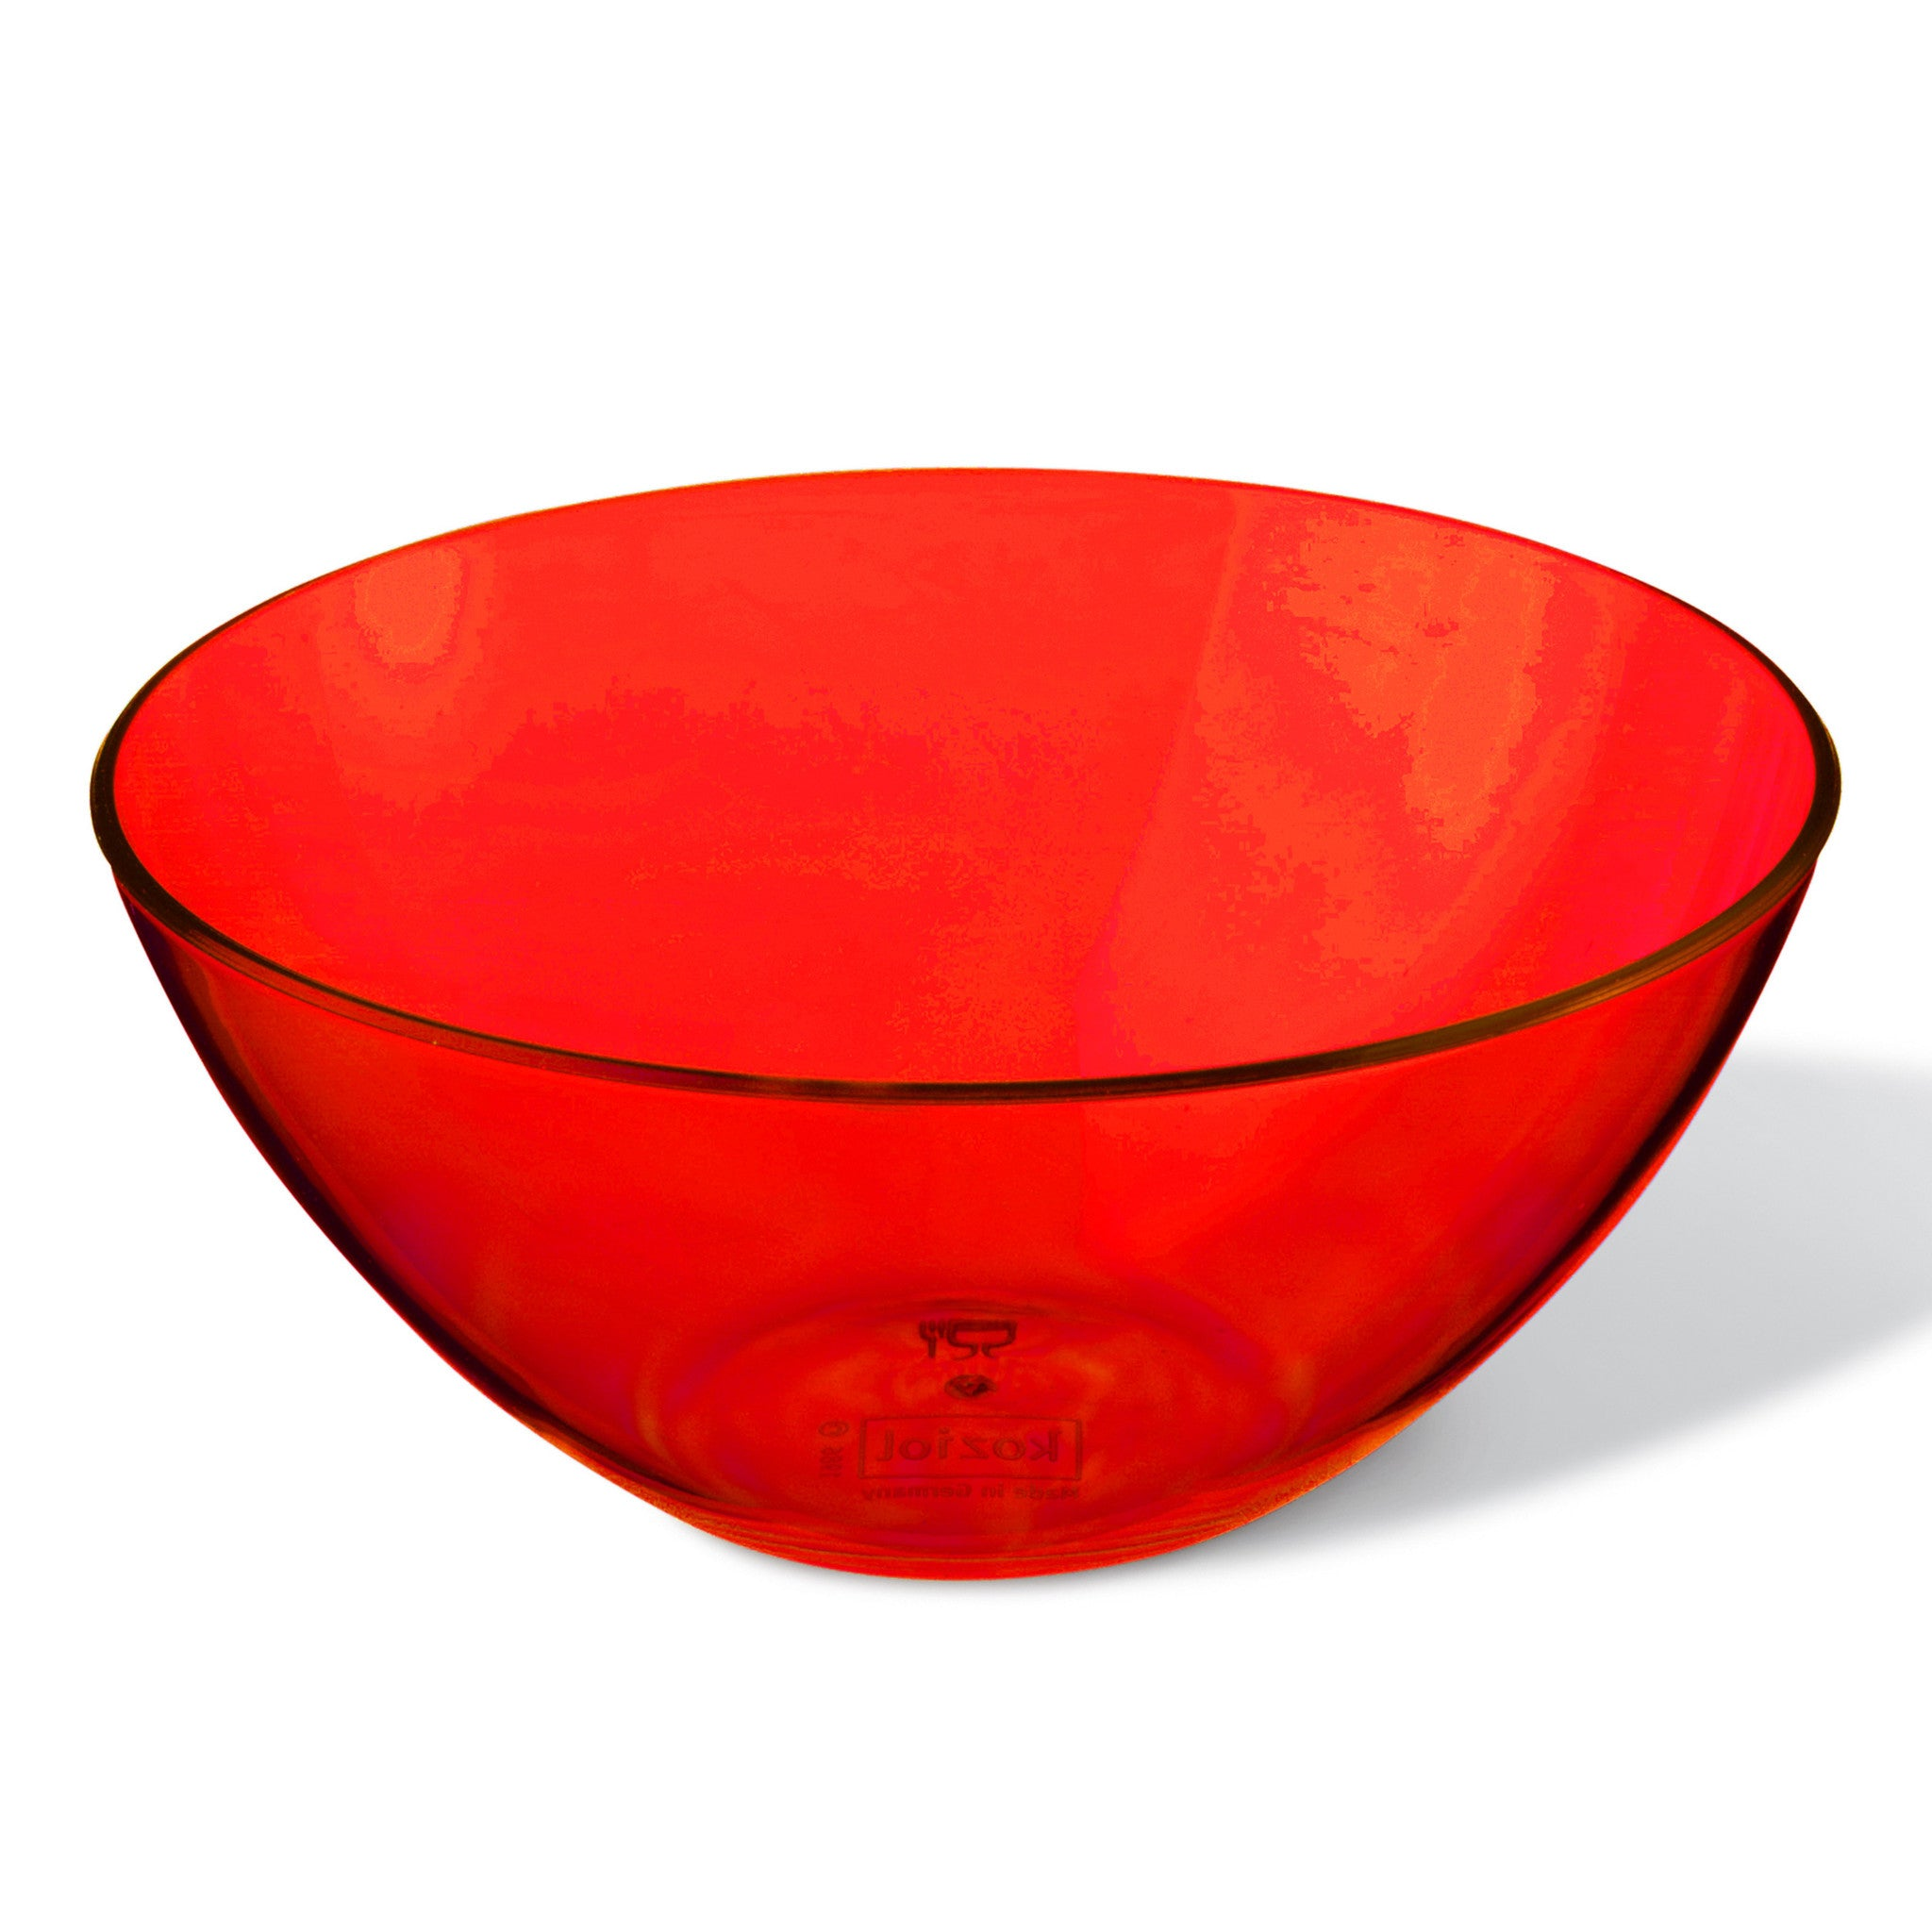 Rio L Bowl, KITCHENWARE, KOZIOL, - Fabrica